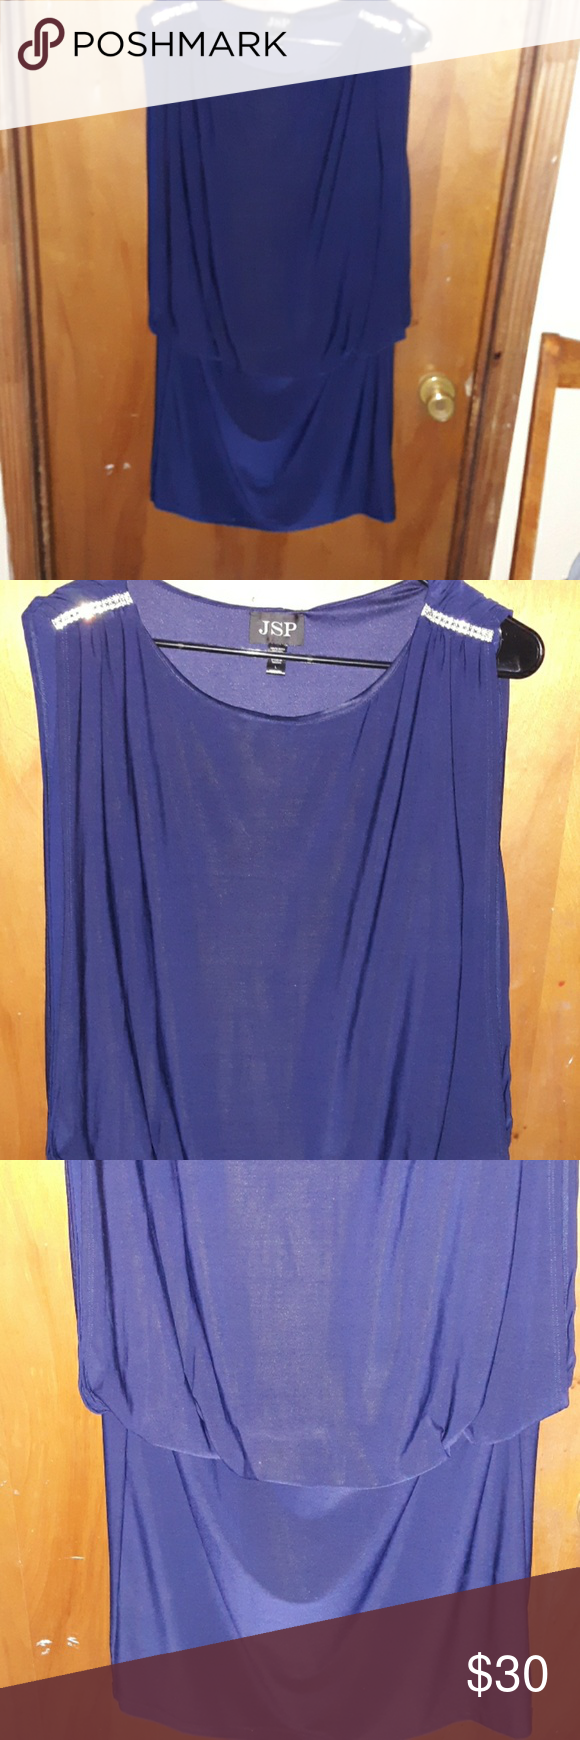 JSP Navy Blue Casual Dress Pre-owned in great condition.  Used once for a wedding.   This is a Navy Blue Sleeveless Short Dress, fitted below waist with double layer of rhinestones on each side of shoulders. 100% Polyester  Size Large (Stretches) Approximately 26 from armpit to bottom.  In some pictures it may appear royal blue but the true color is Navy Blue. JSP Dresses Midi #navyblueshortdress JSP Navy Blue Casual Dress Pre-owned in great condition.  Used once for a wedding.   This is a Navy #navyblueshortdress